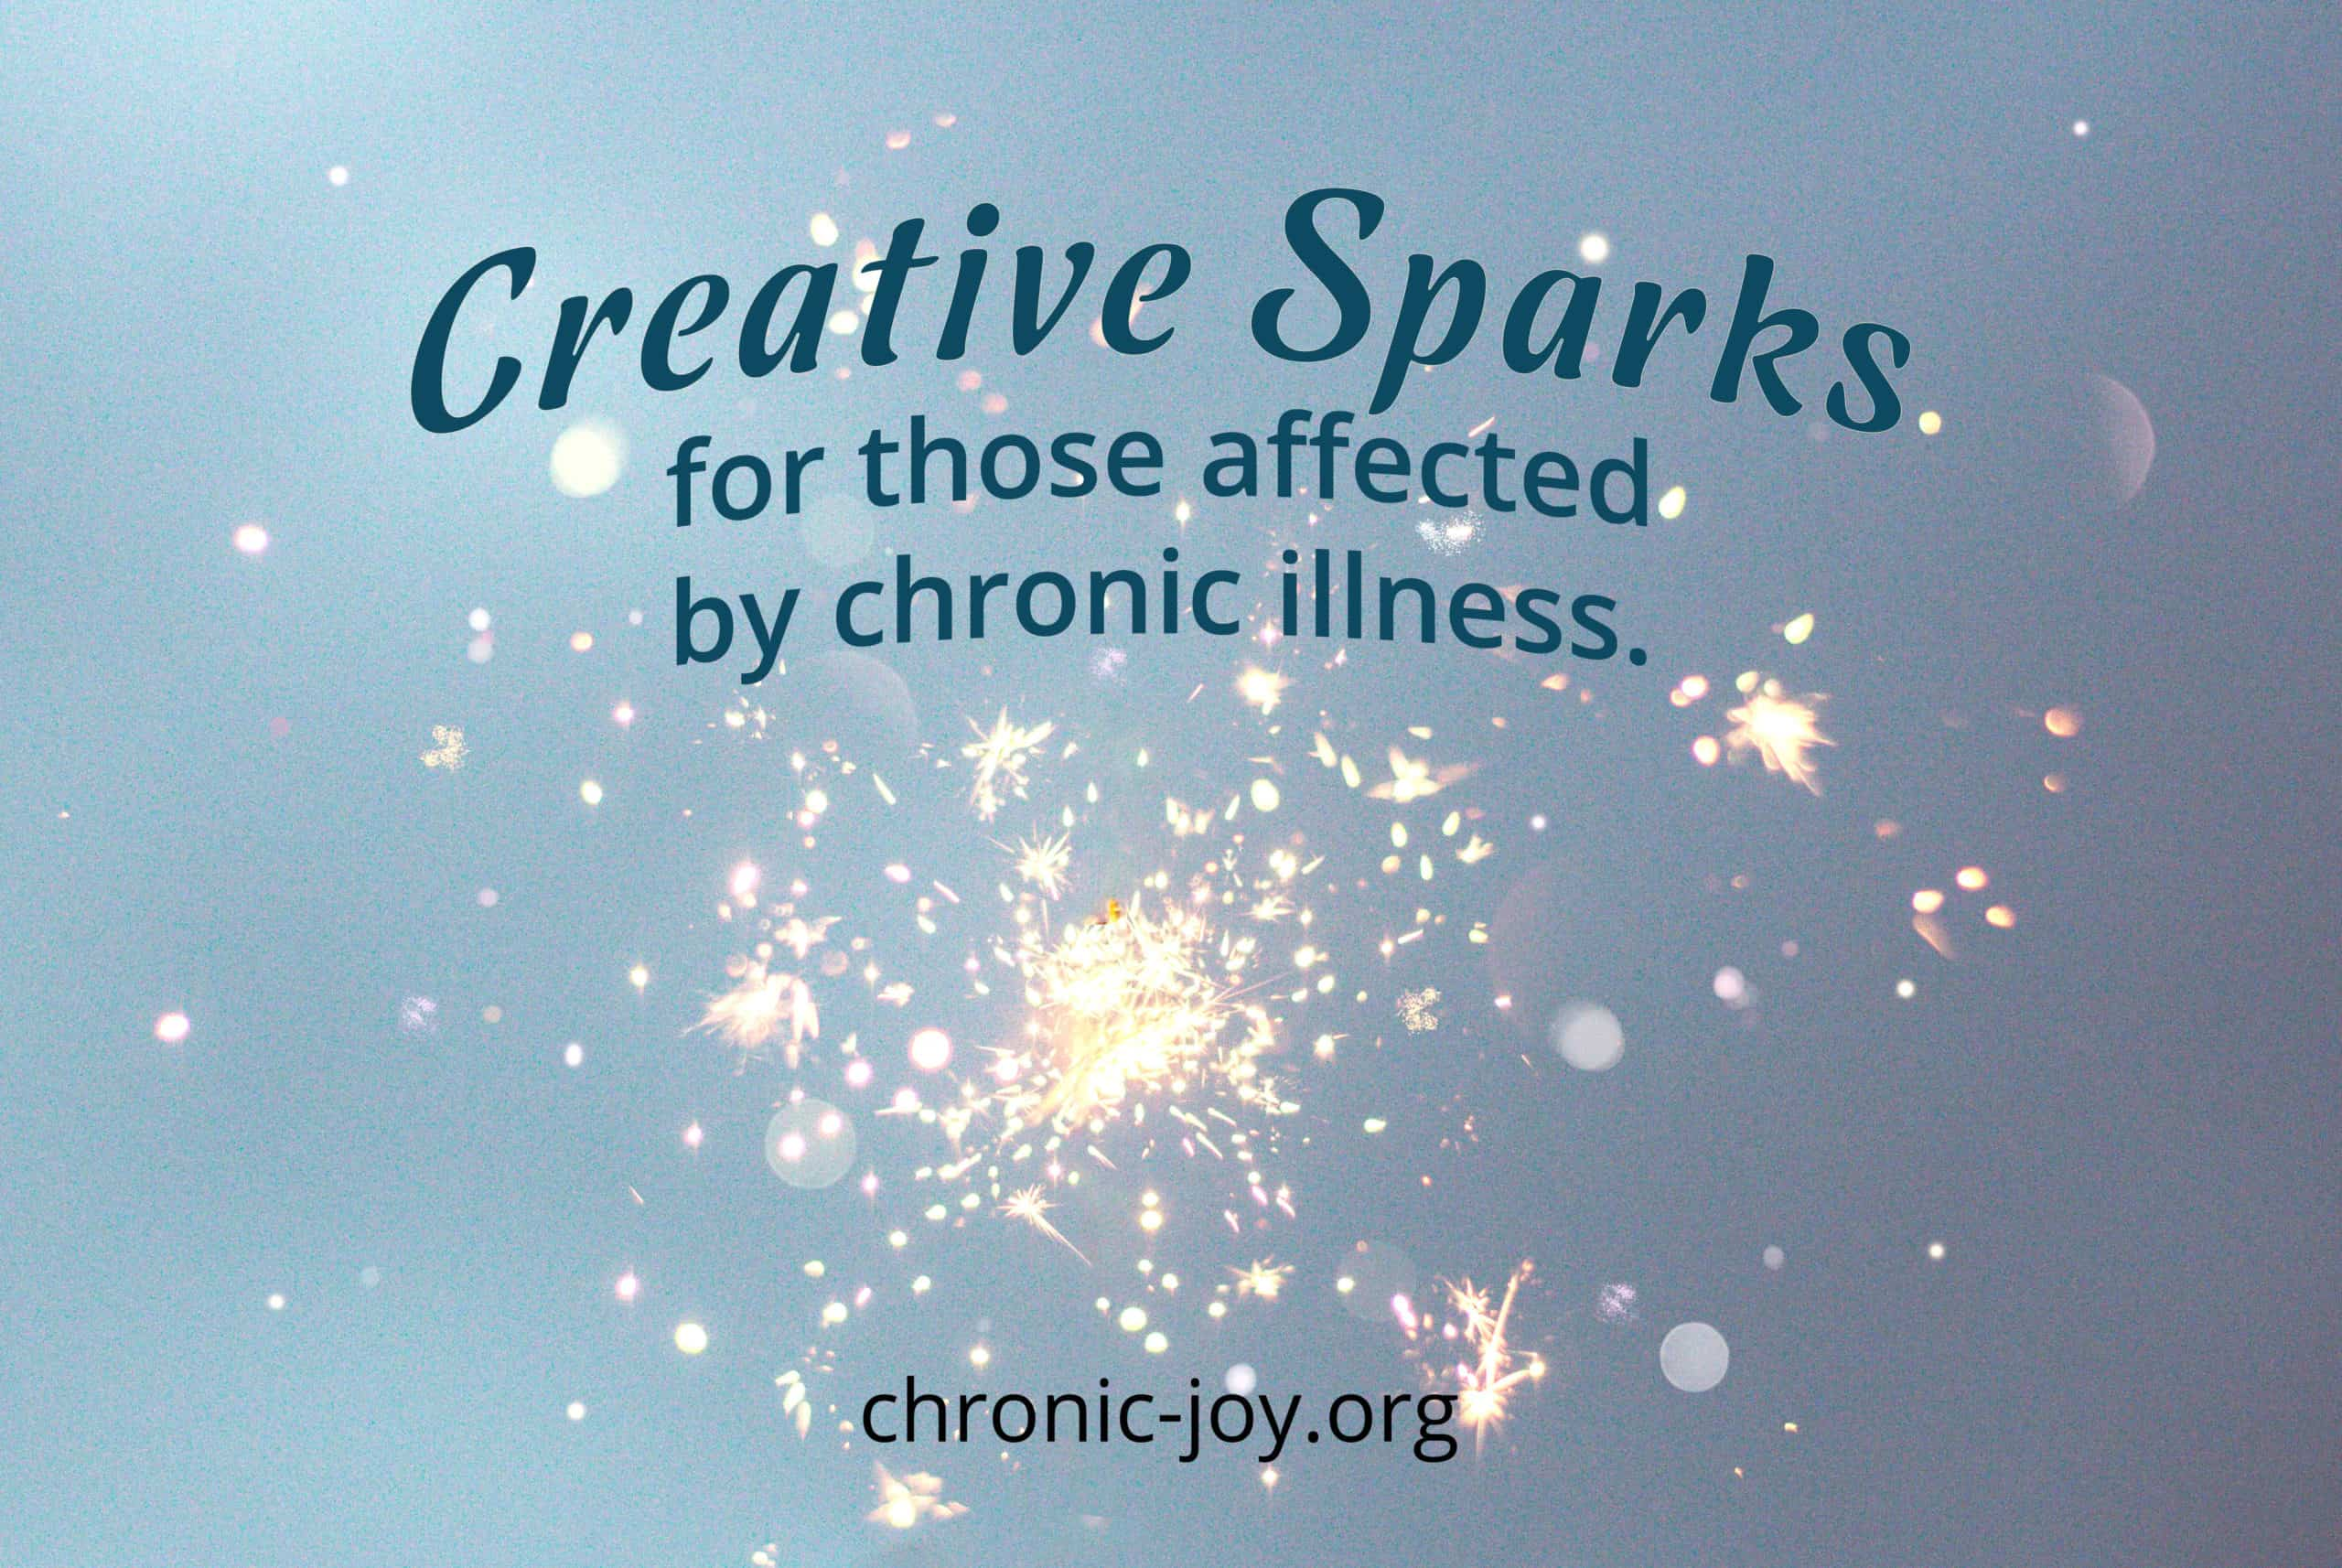 Creative Sparks for those affected by chronic illness.